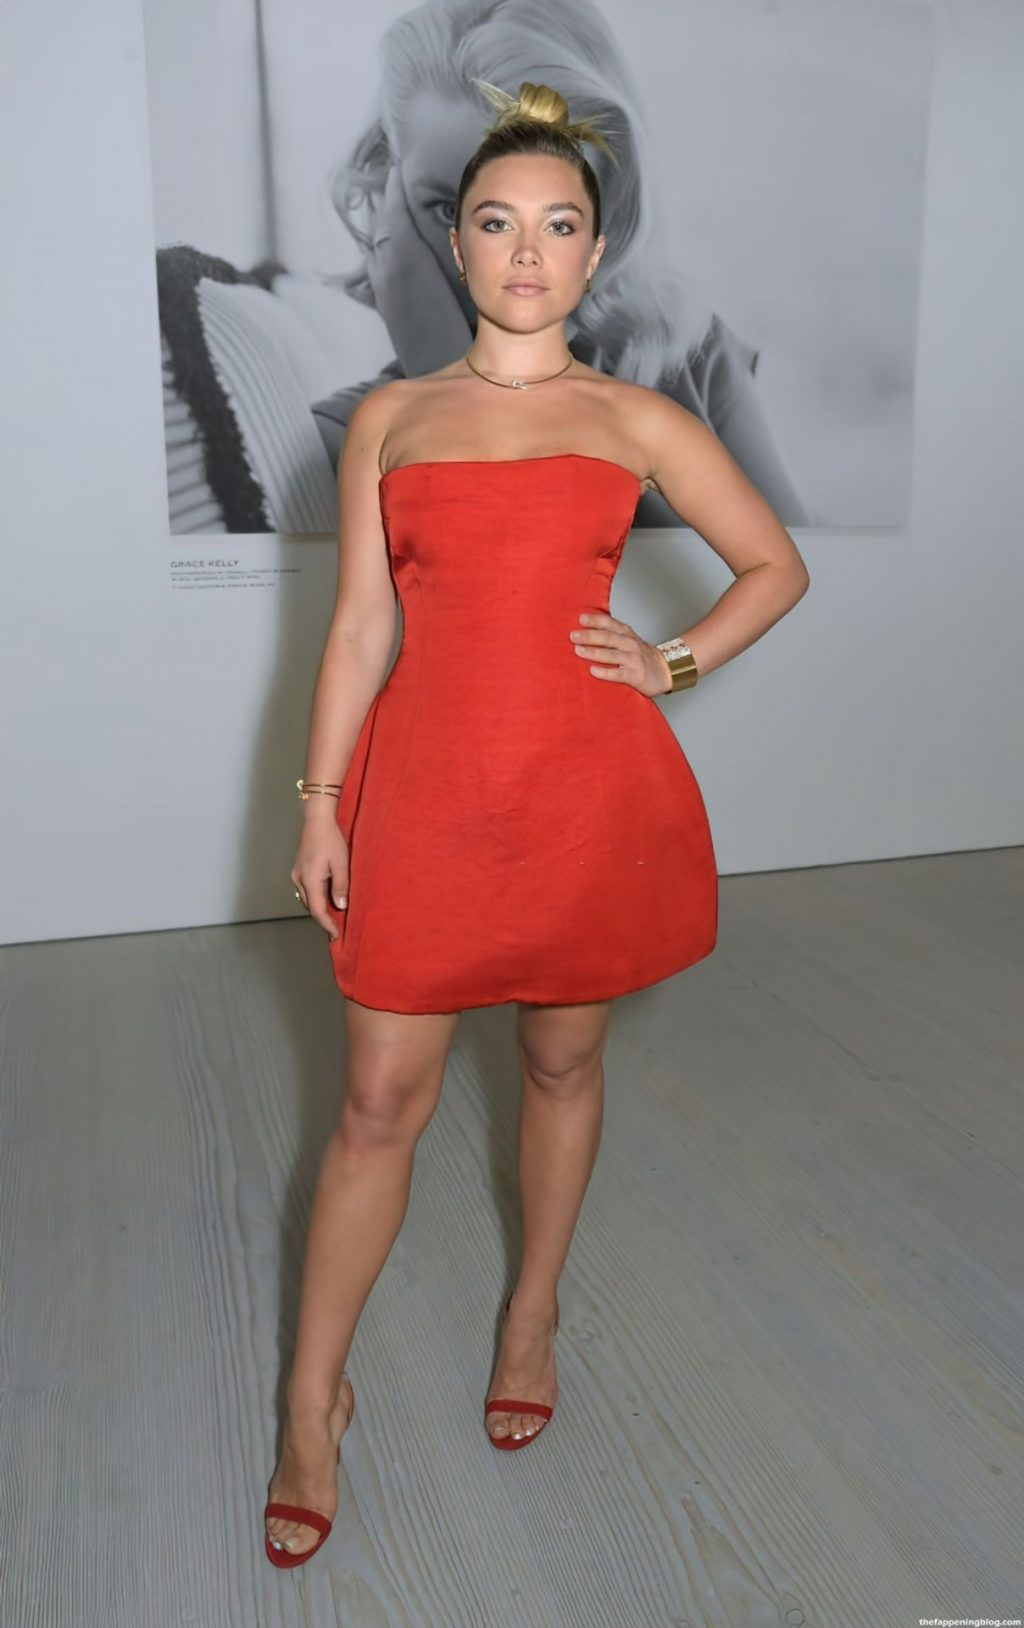 Leggy Florence Pugh Looks Chic in a Red Dress at Art Gallery Event in LA (17 Photos)